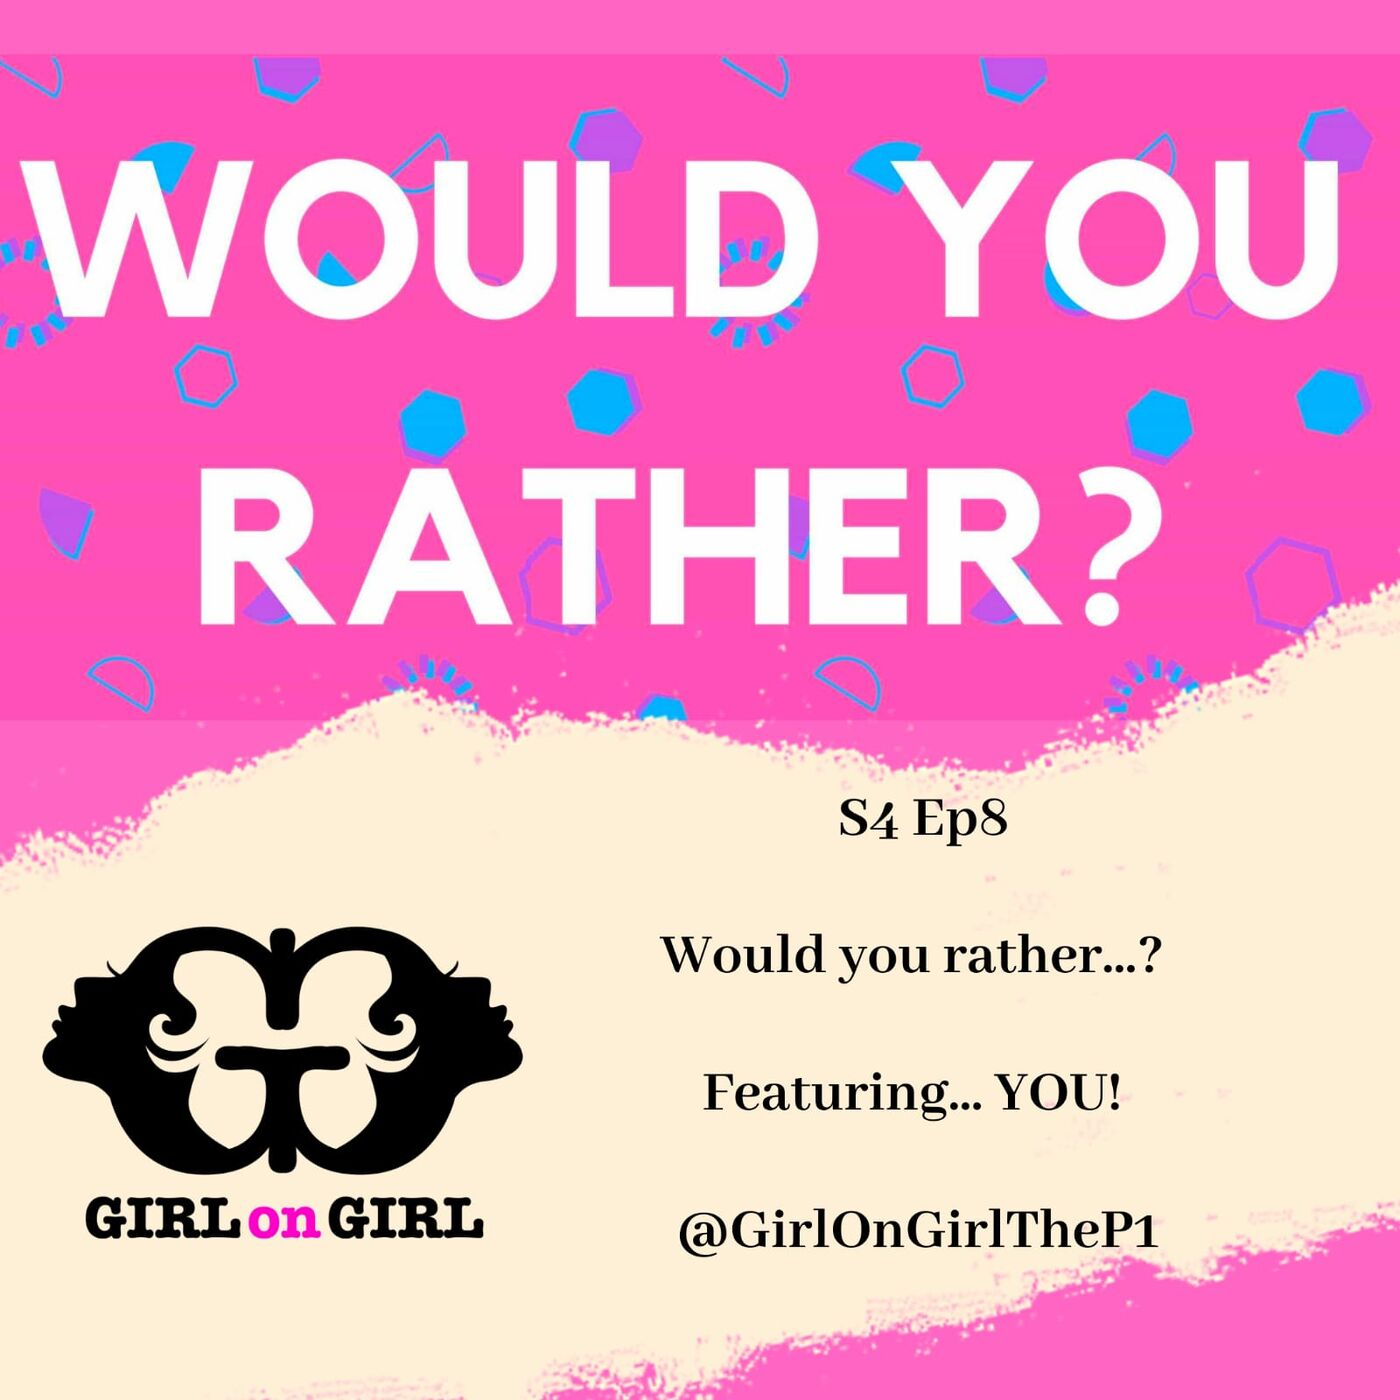 Girl on Girl S4 Ep 8: Would you rather...? Featuring YOU!